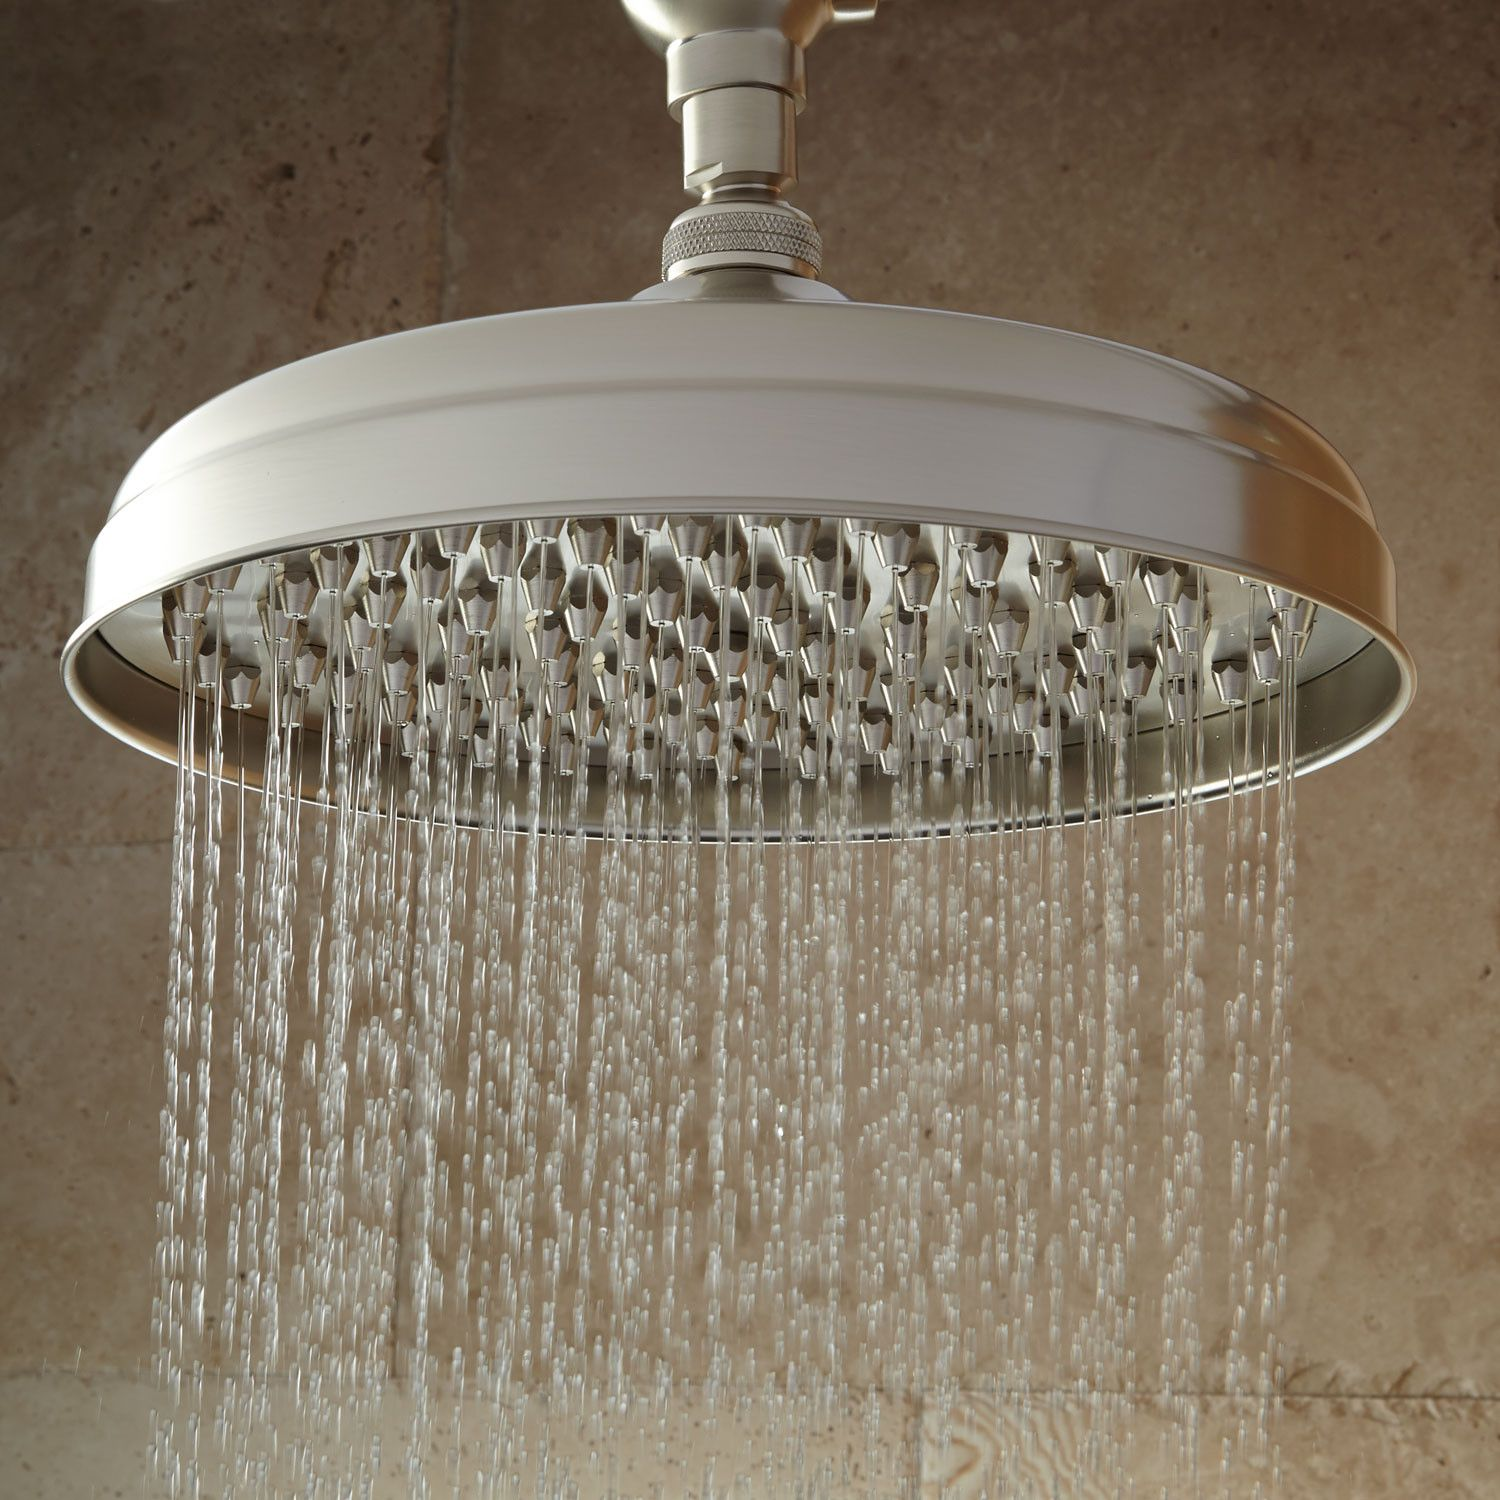 Lambert Rainfall Nozzle Shower Head With Victorian Arm  Bathroom